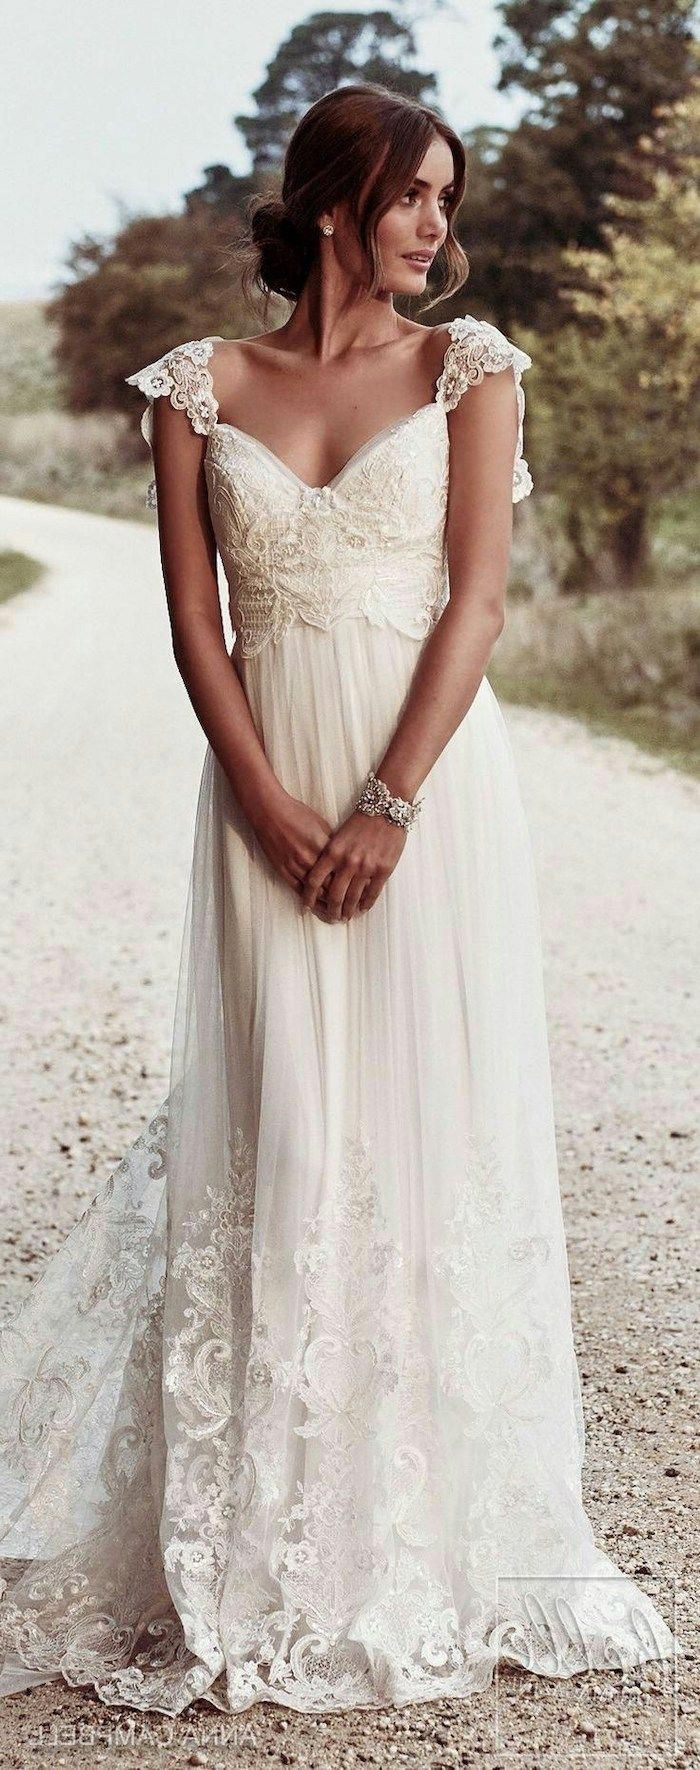 flowy wedding dress, vintage dress, made of lace and chiffon, brown hair, in a low updo #beachweddingdress #lacechiffon